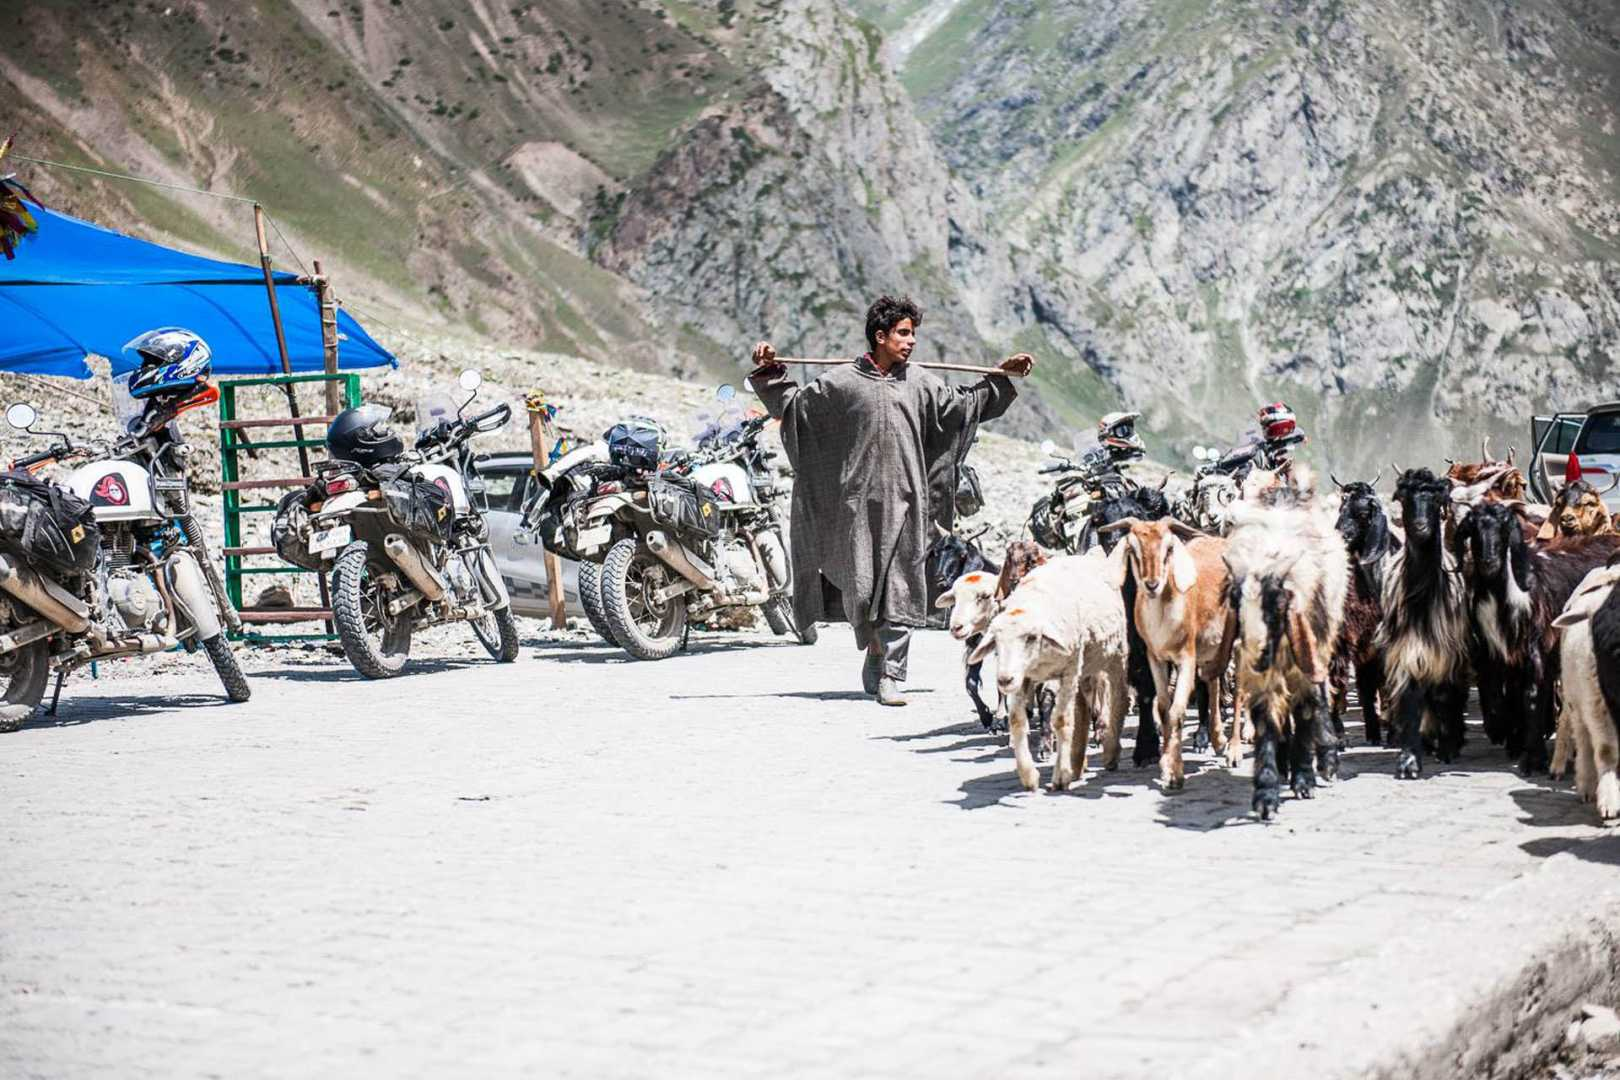 Himalayan mountain goats by motorcycles